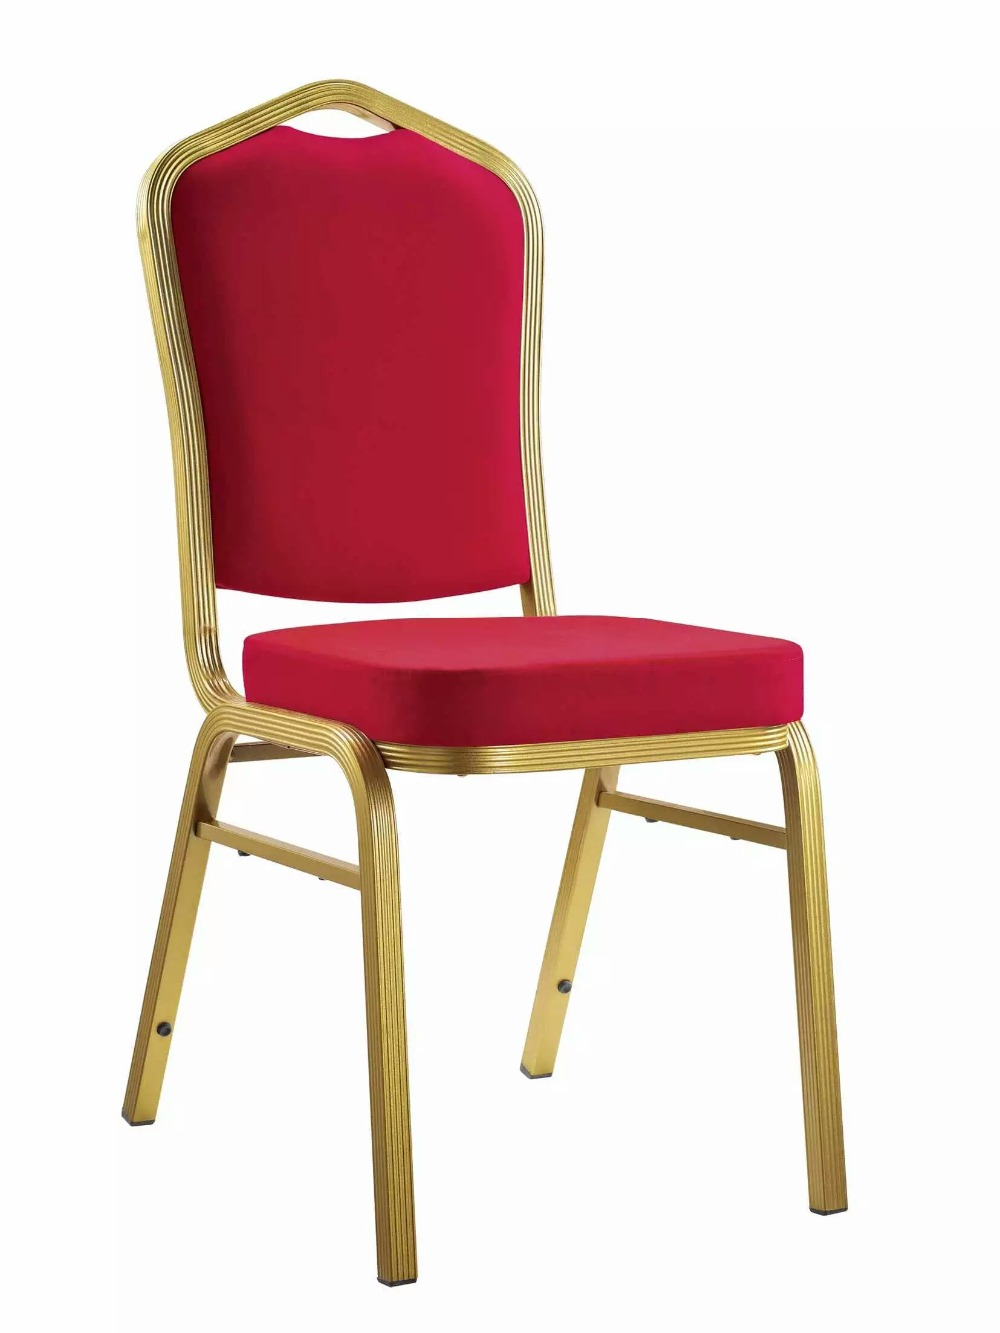 Banquet Chair Stackable Chairs Restaurant Chairs Metal 5pc Carton China